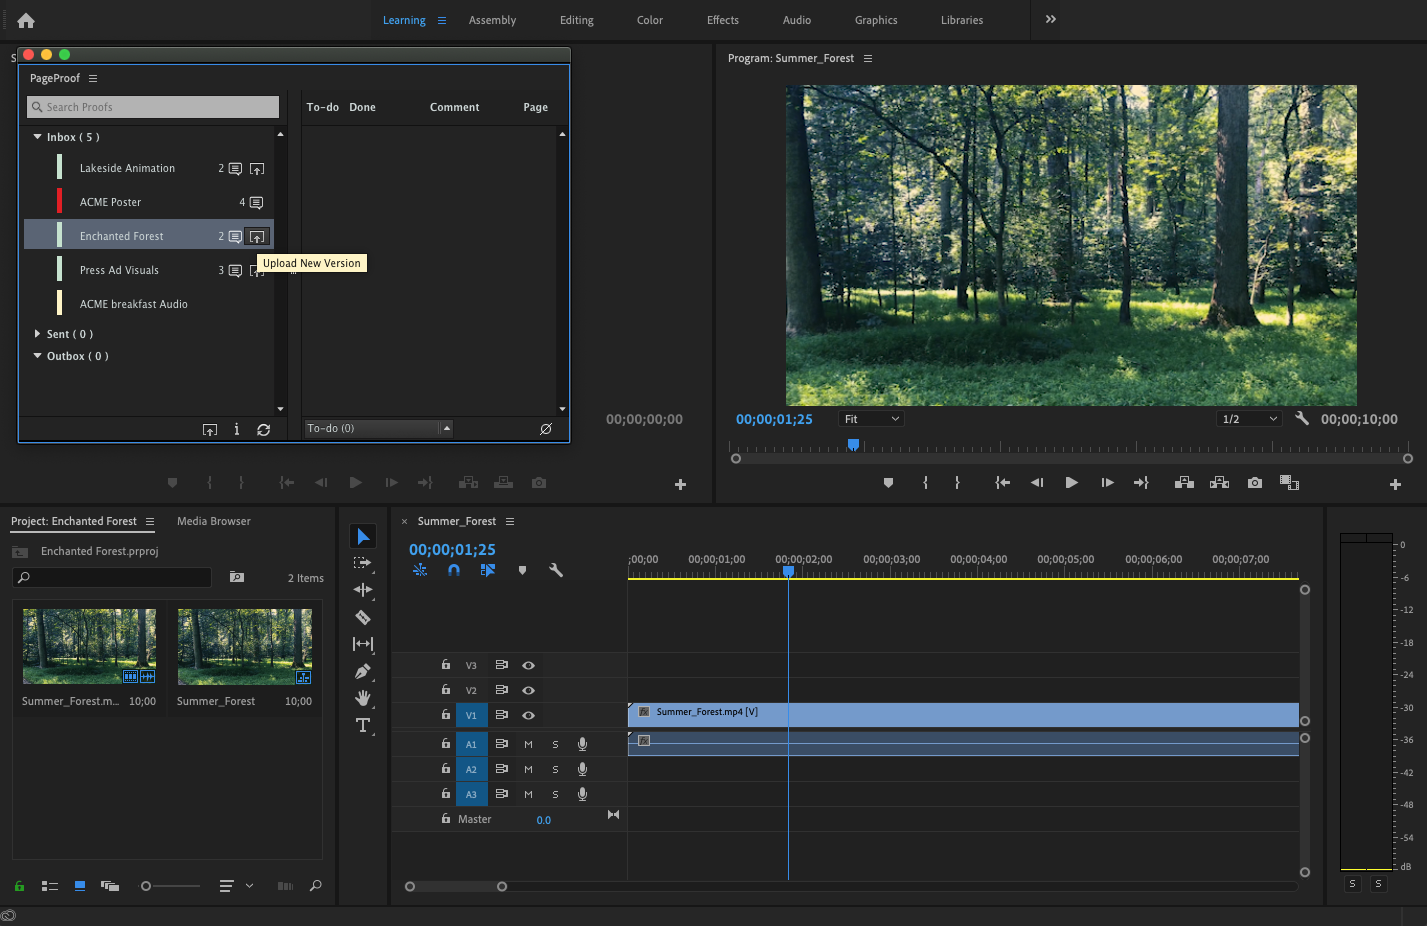 PageProof panel in Adobe Premiere Pro showing upload new version